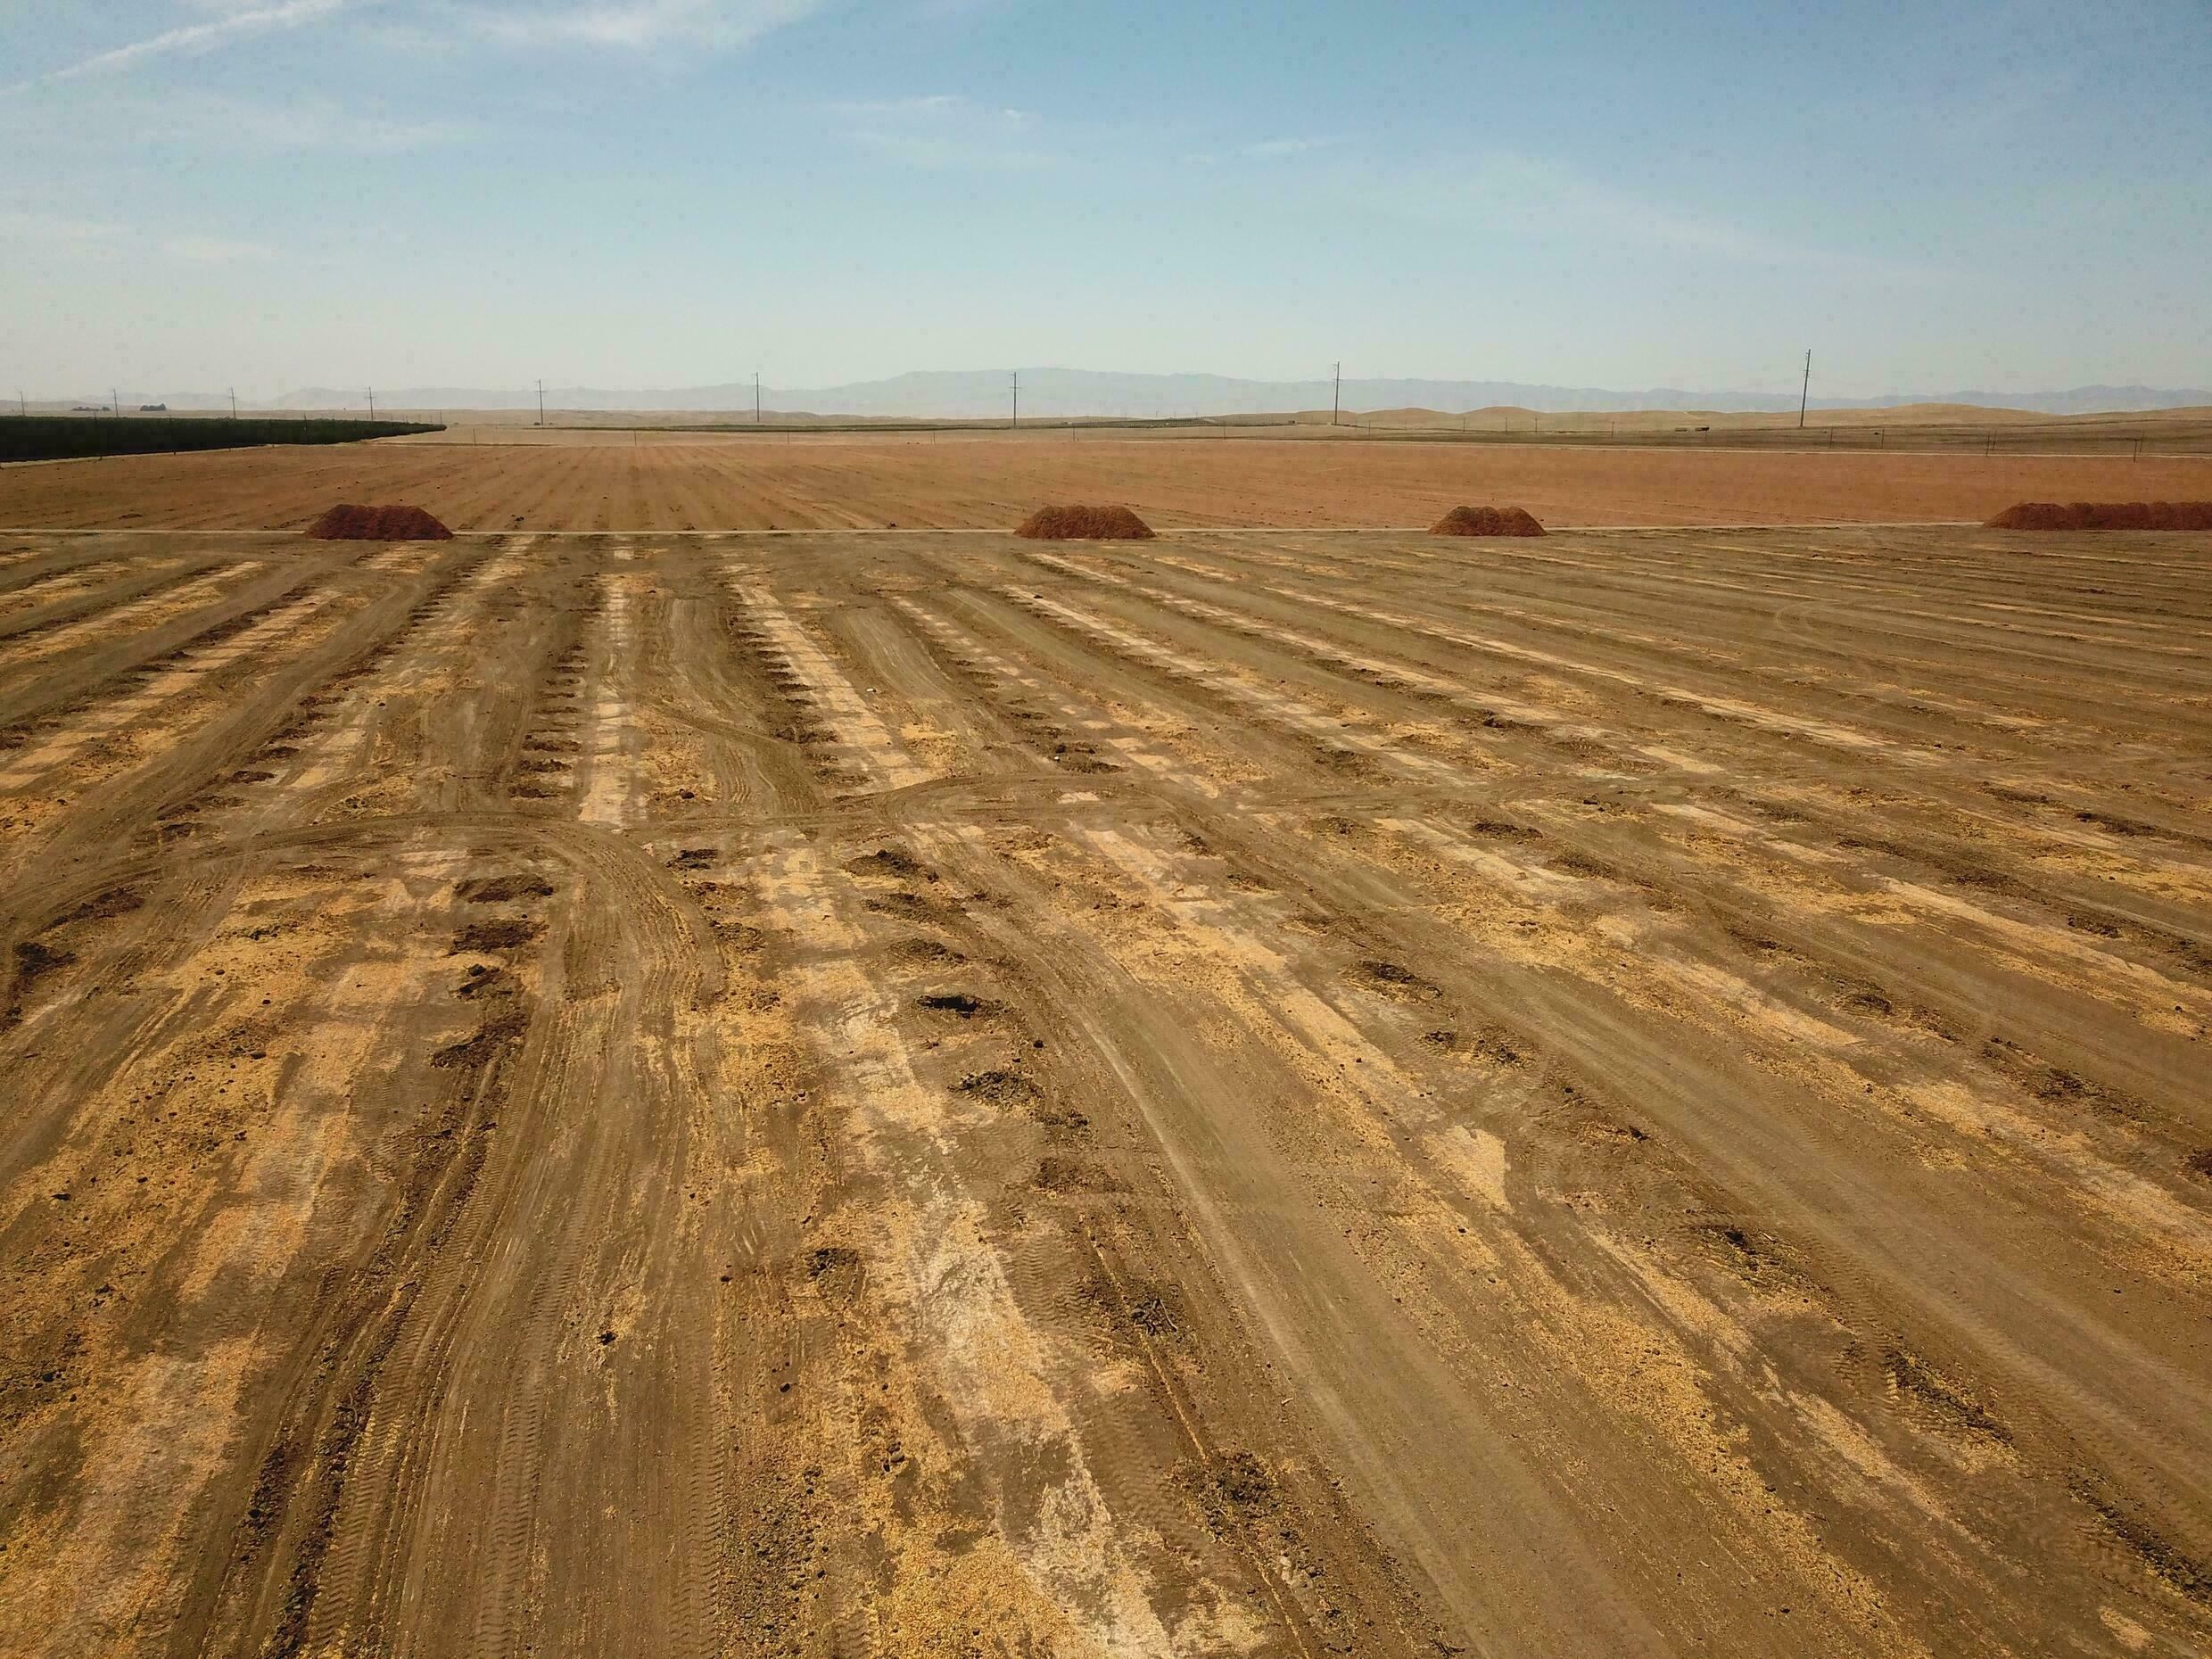 Lacking water, farmers plowed up almond trees in this field in Huron, California